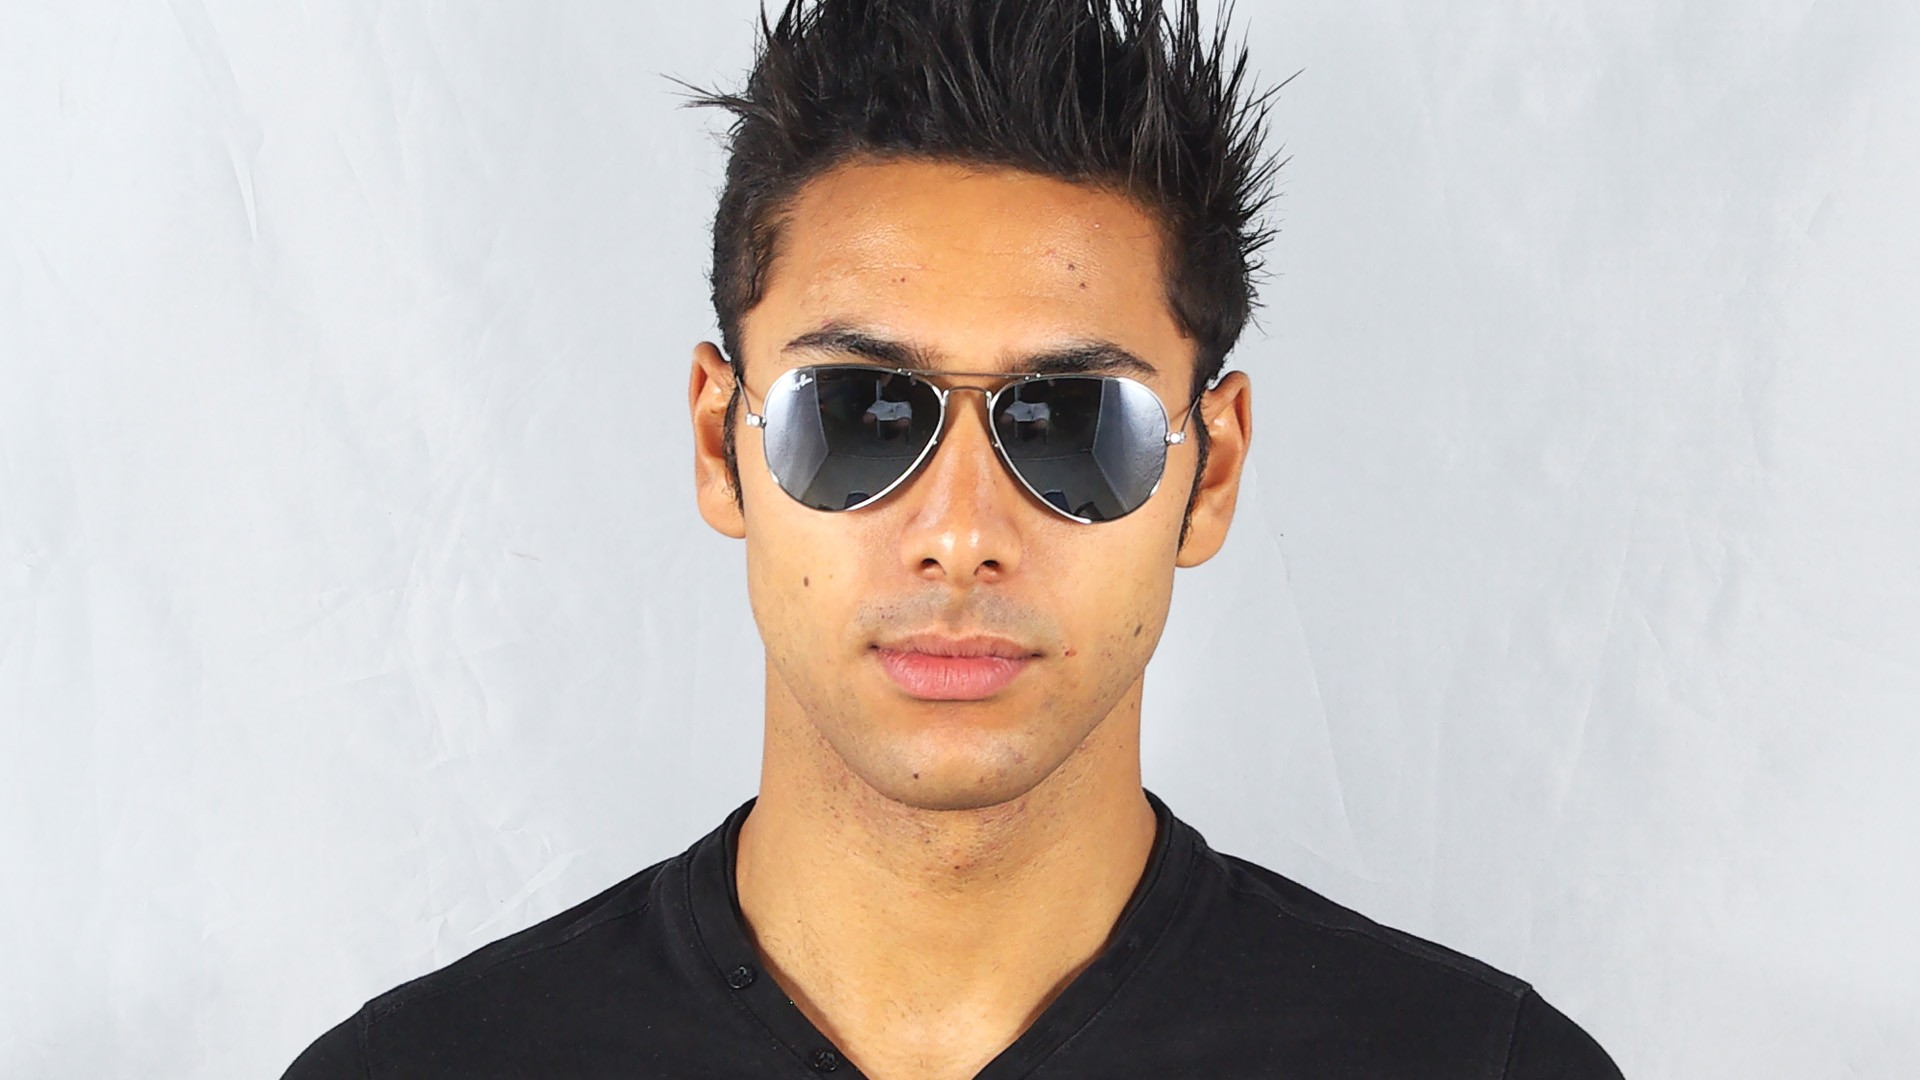 14 Miroirs Metal Argent Ban 55 Rb3025 Large Ray Aviator Small W3275 QtxhCrdsBo